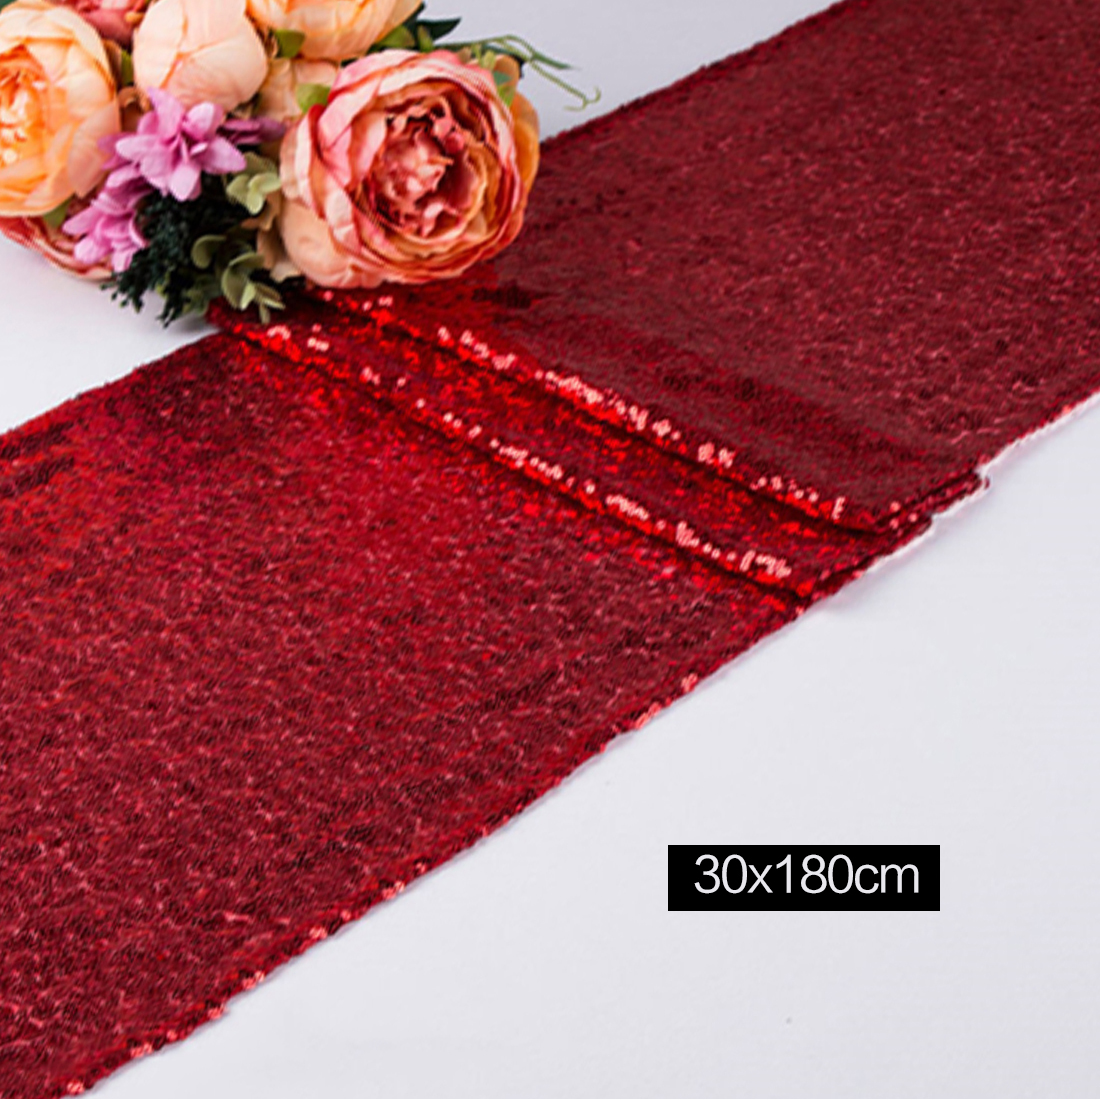 silvergold sequin table runner for wedding table decoraiton 30cm by 180cmmost cheap